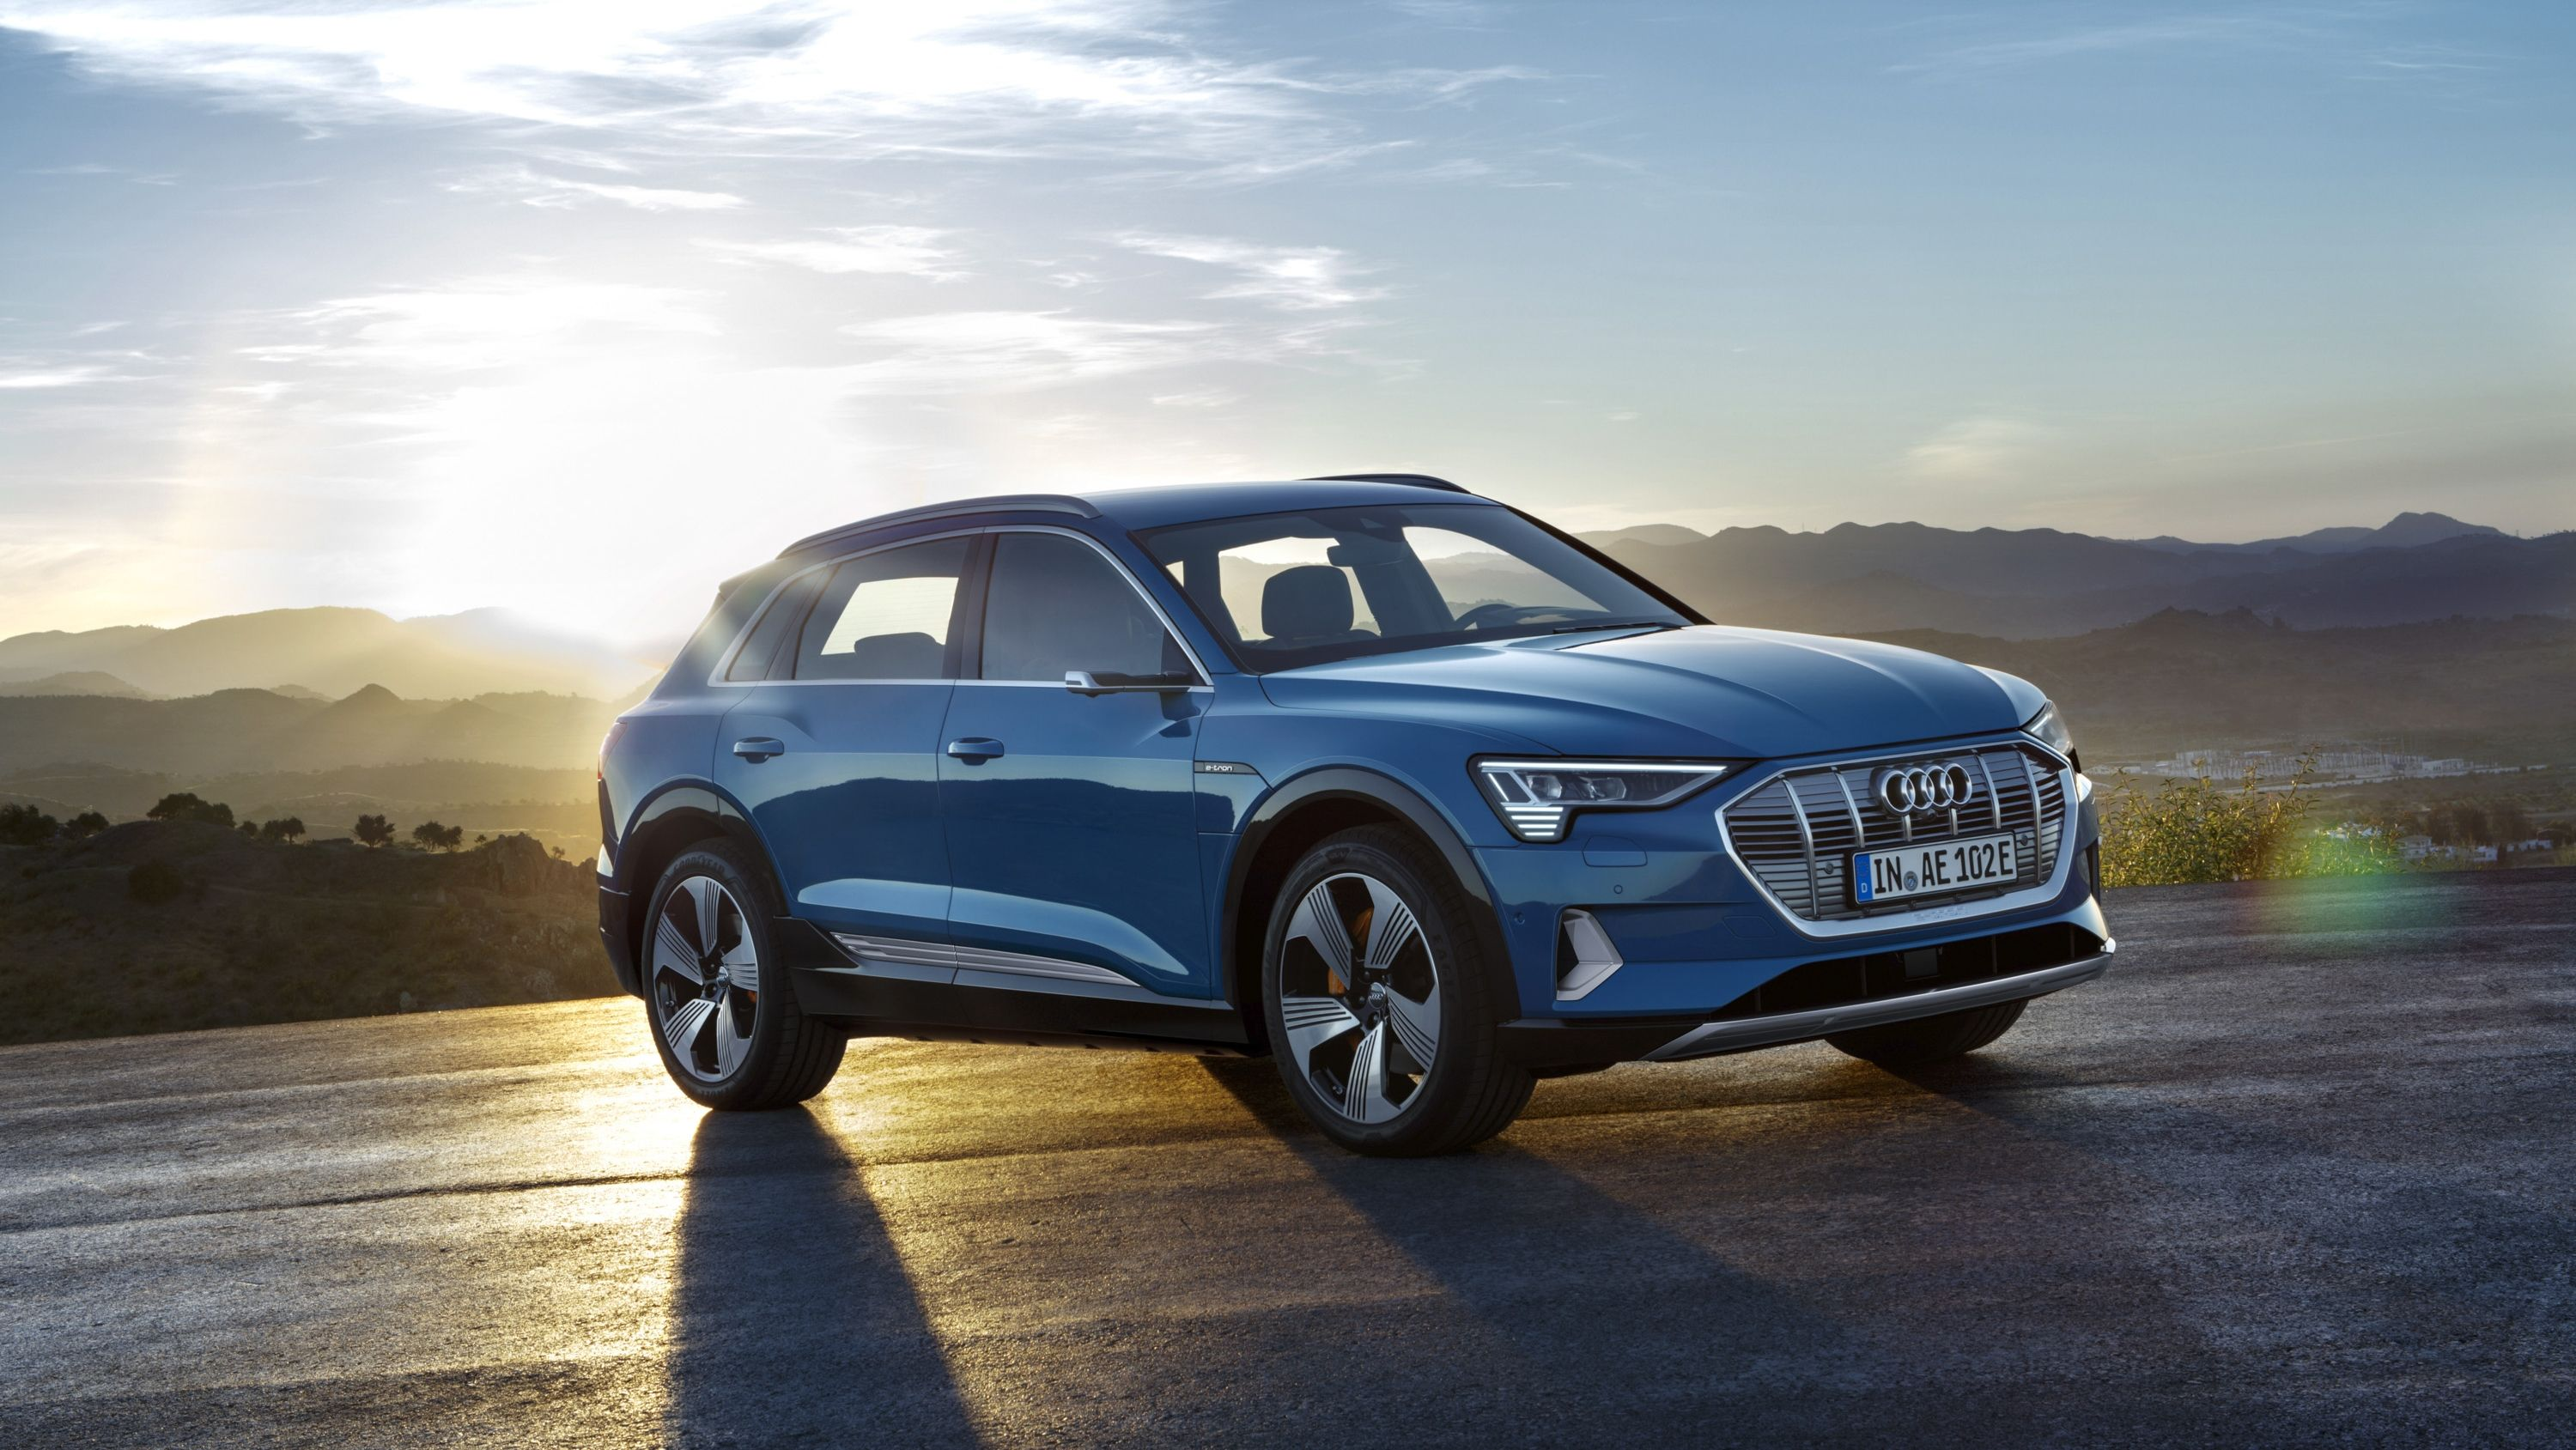 The 2019 Audi E Tron Suv Debuts With A 75 000 Price Tag Max Towing